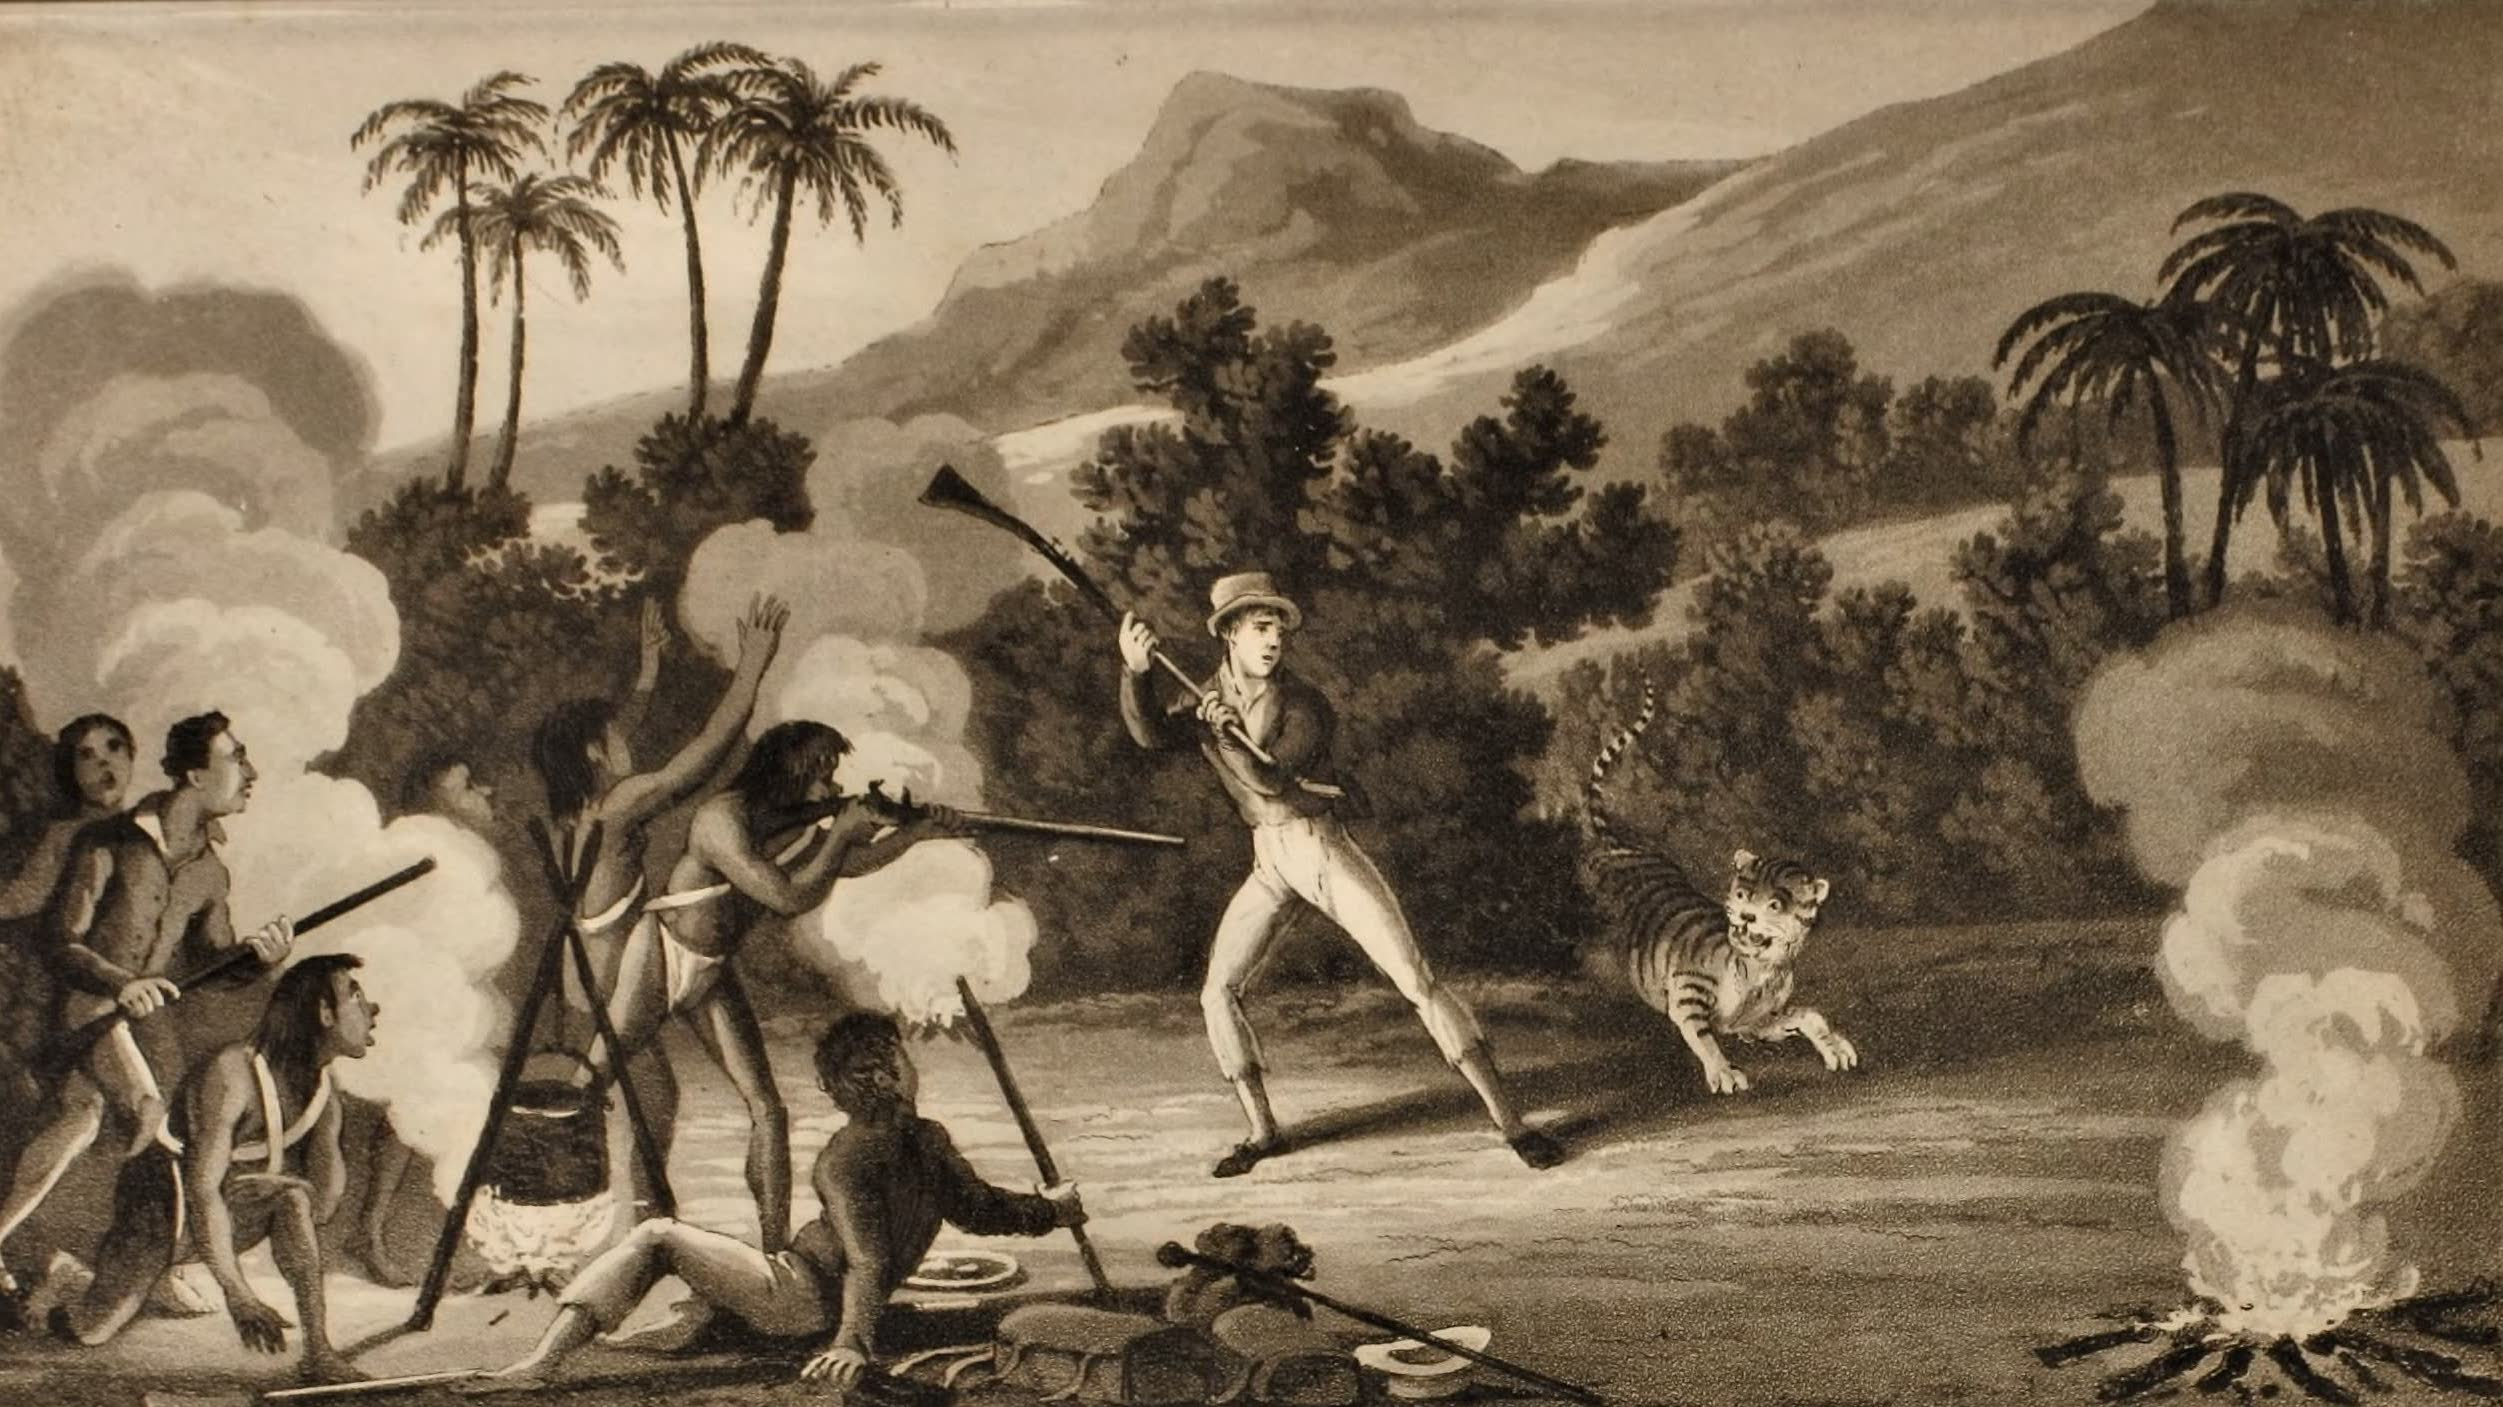 Journal of an Expedition 1400 miles up the Orinoco - Attack by a Tiger (1822)